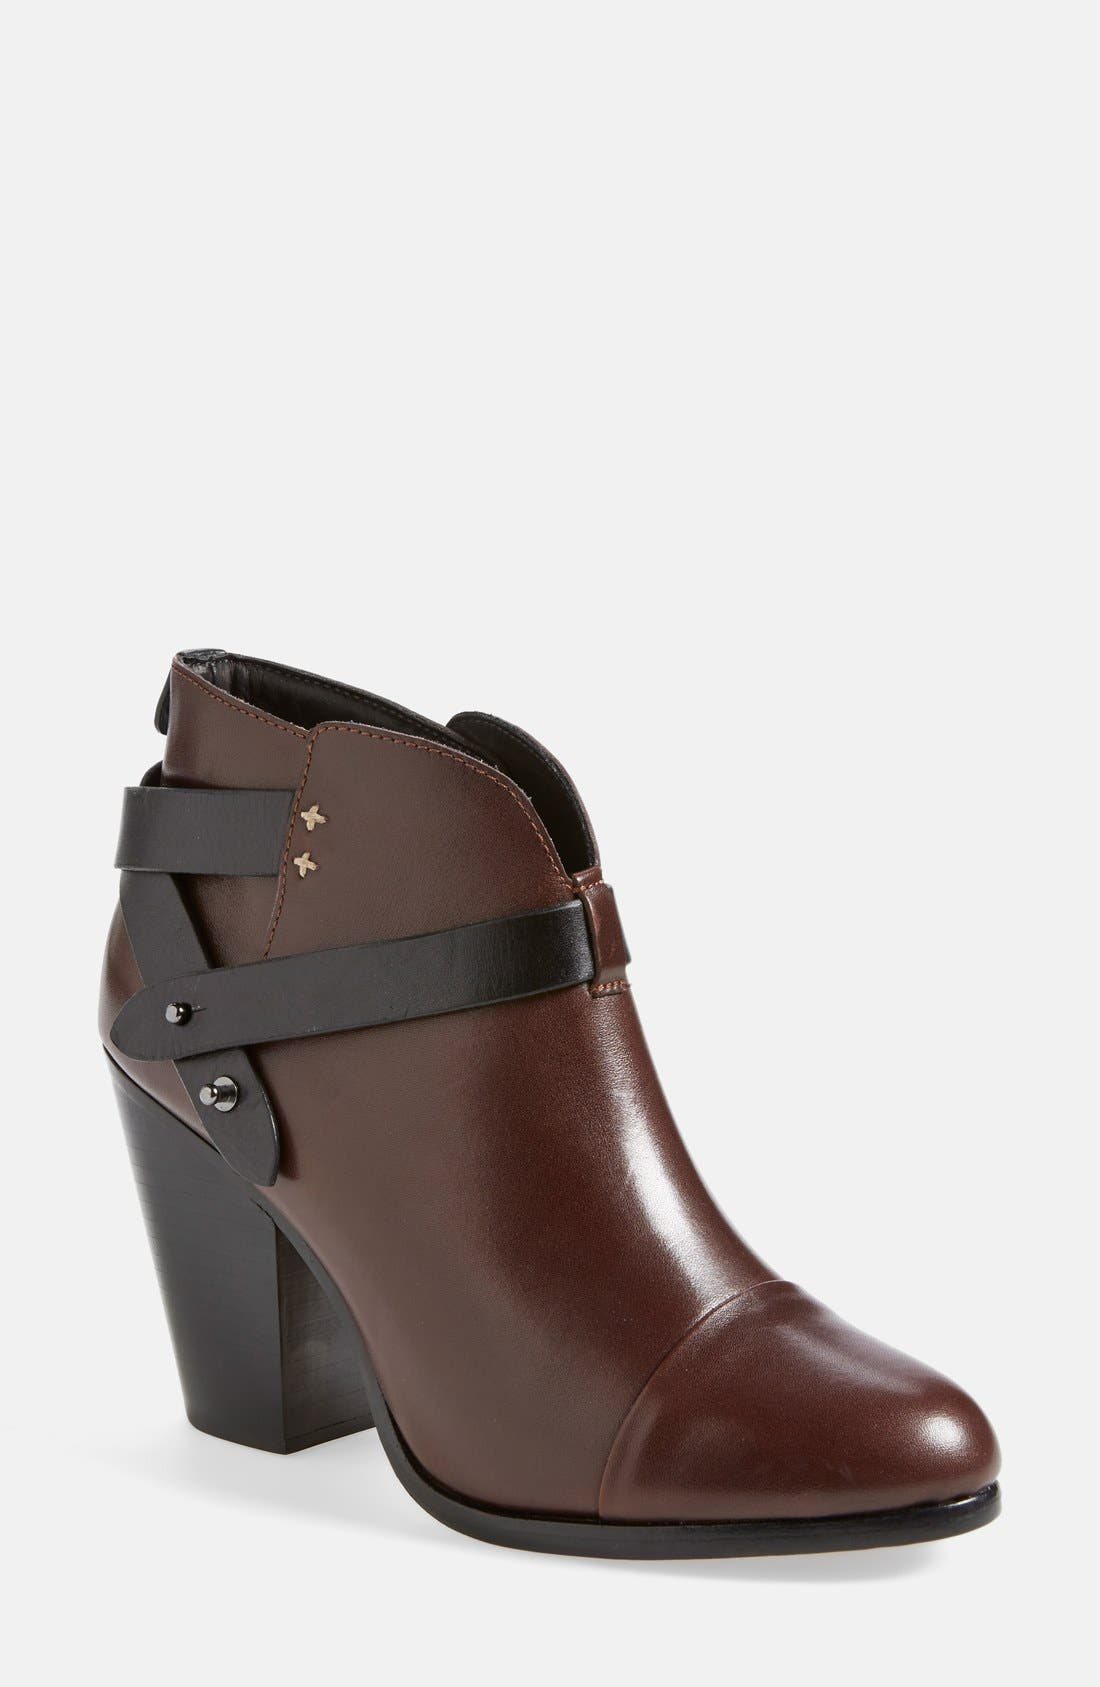 Alternate Image 1 Selected - rag & bone 'Harrow' Leather Boot (Women) (Nordstrom Exclusive)